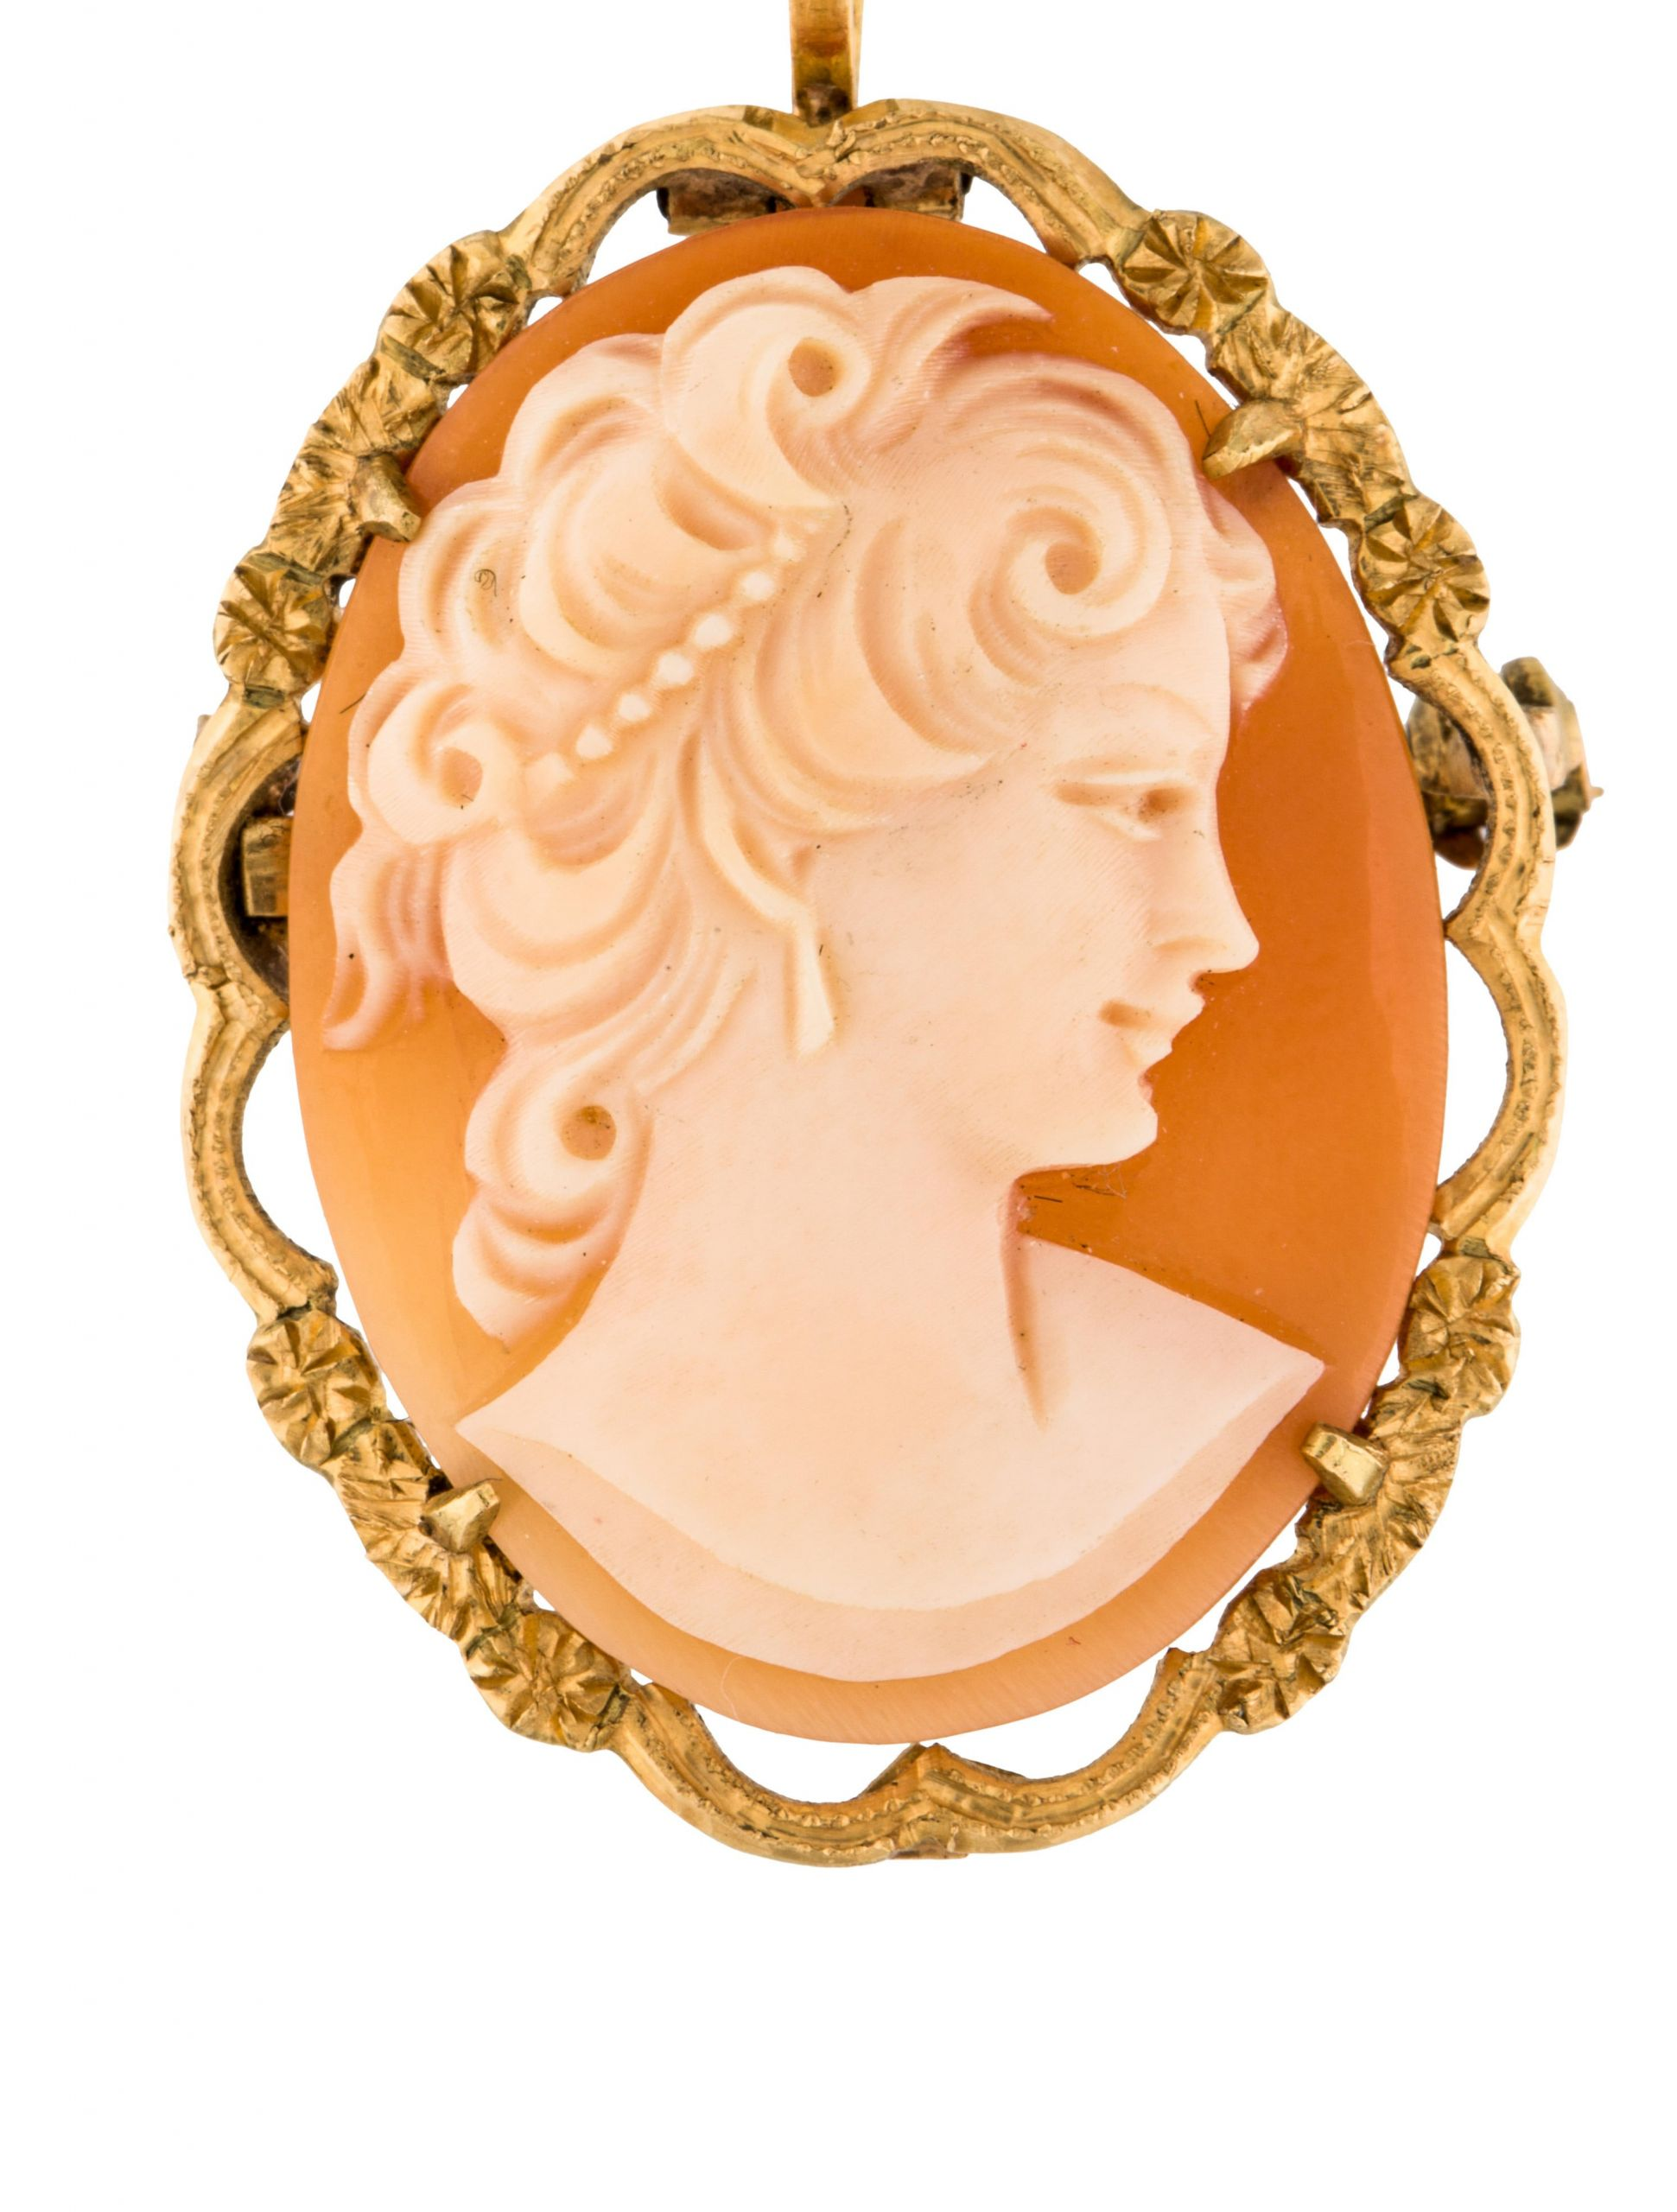 Cameo Brooches  18K Cameo Brooch Pendant Brooches BROOC